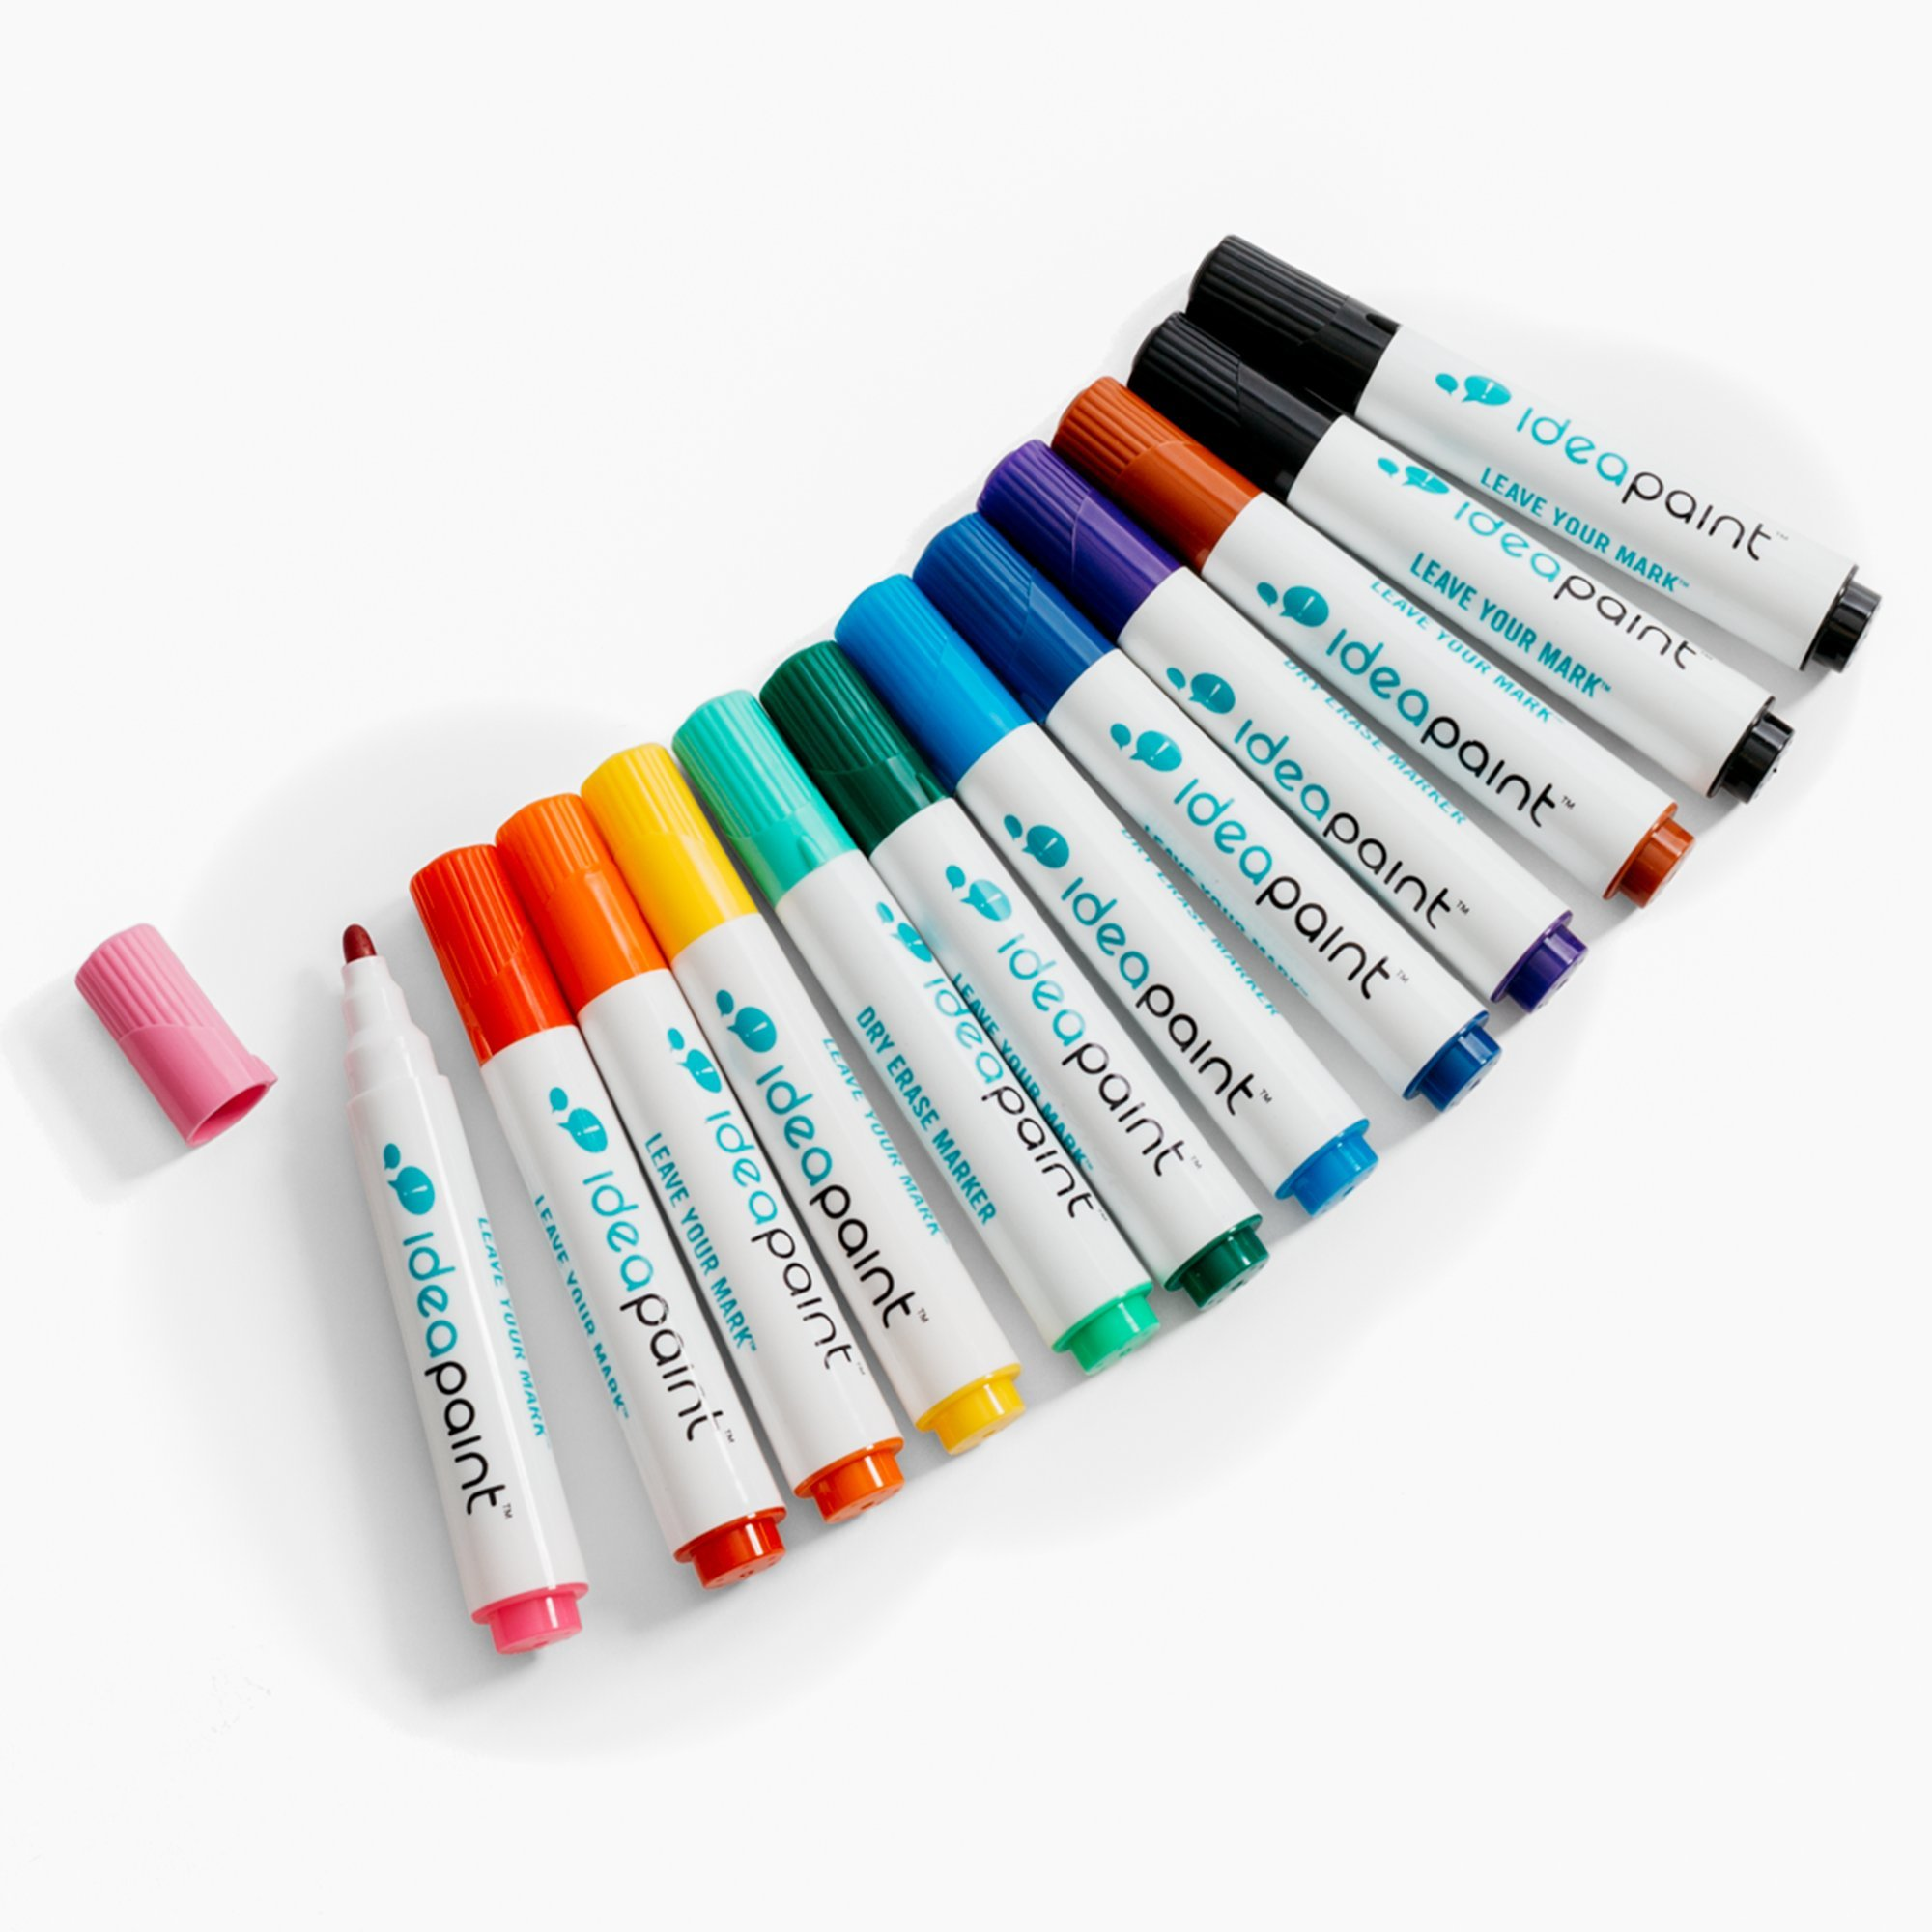 IdeaPaint Write Dry Erase Markers 12 Pack Low Odor Non-Toxic, Multi-Colors Assorted with Tray | 2 Black, 1 Brown, Purple, Dark Blue, Light Blue, Dark Green, Light Green, Yellow, Orange, Red, and Pink